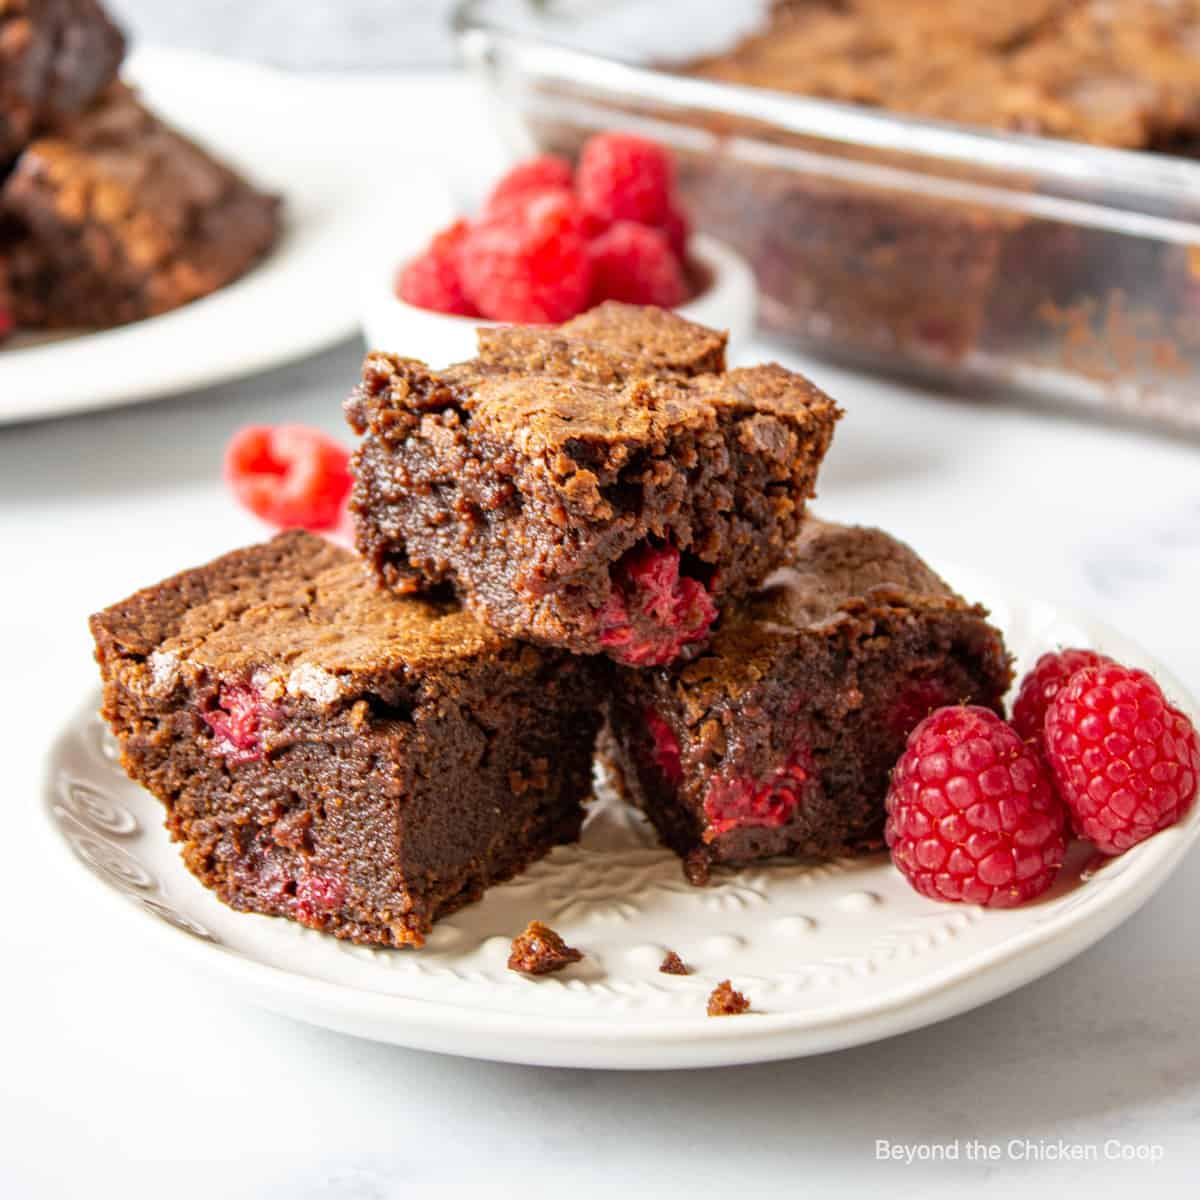 Three brownies filled with raspberries on a white plate.